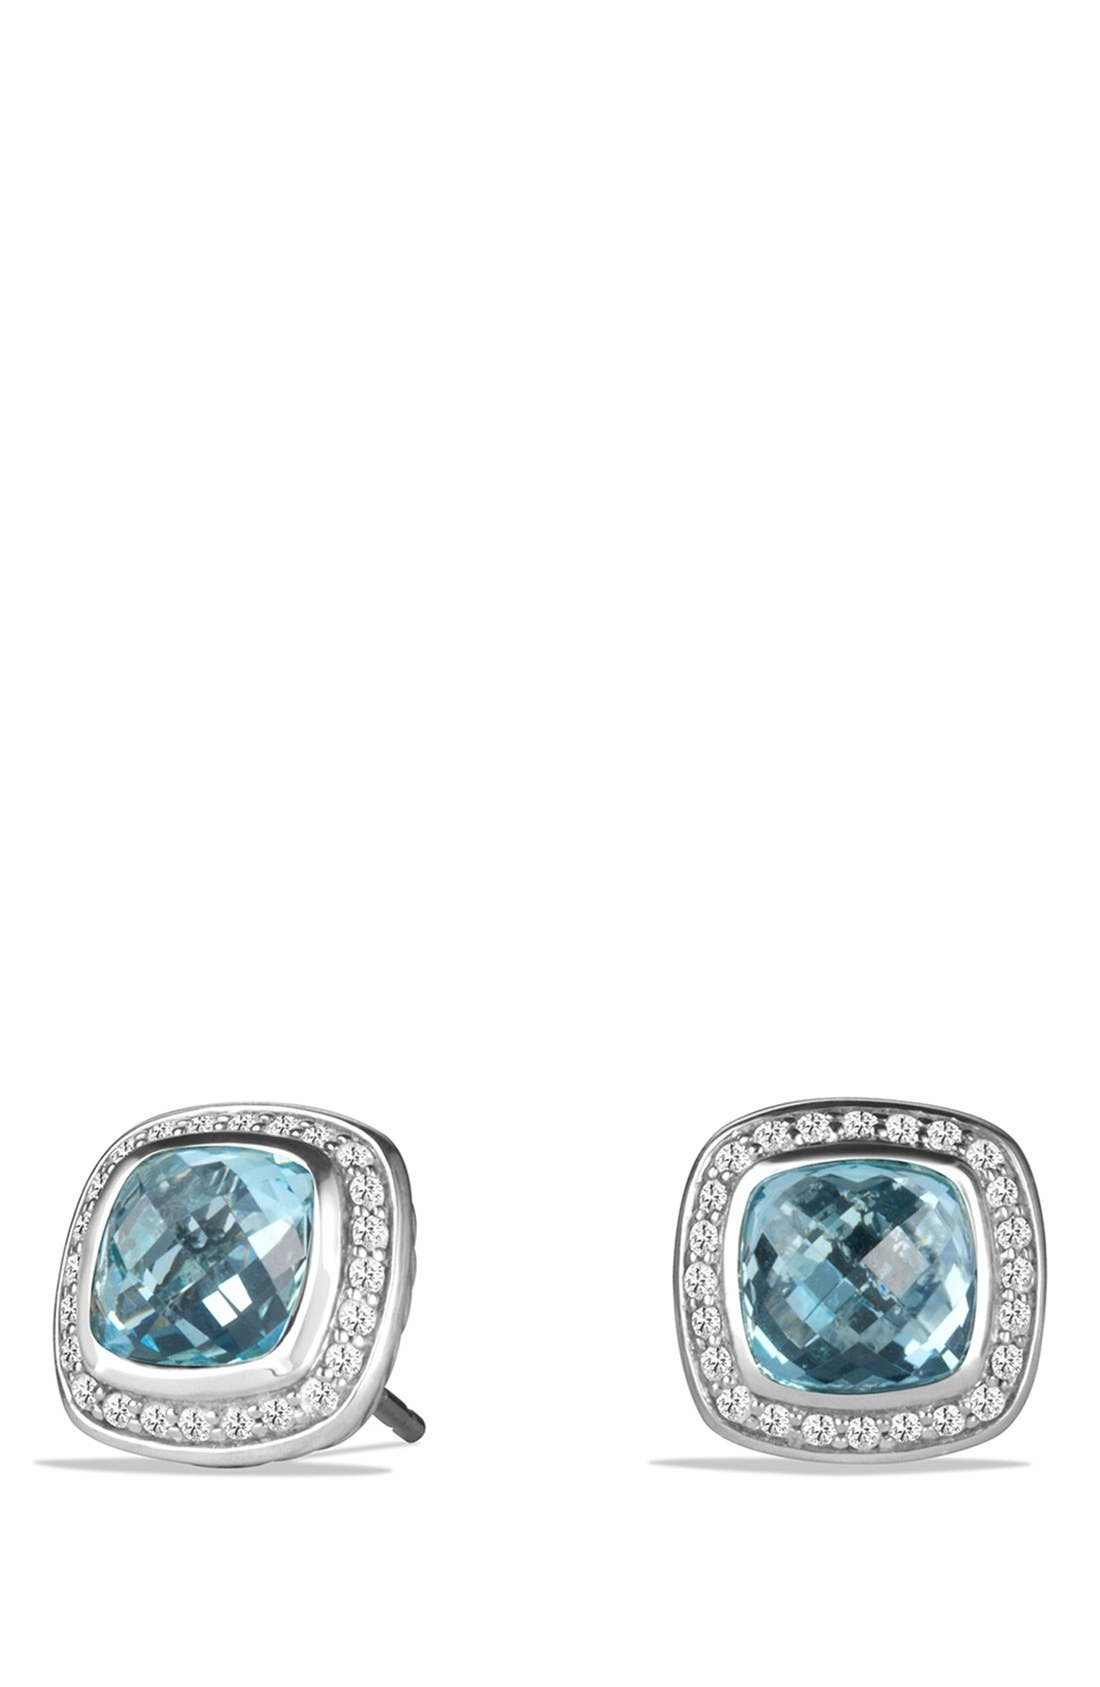 'Albion' Earrings with Semiprecious Stone and Diamonds,                         Main,                         color, Blue Topaz